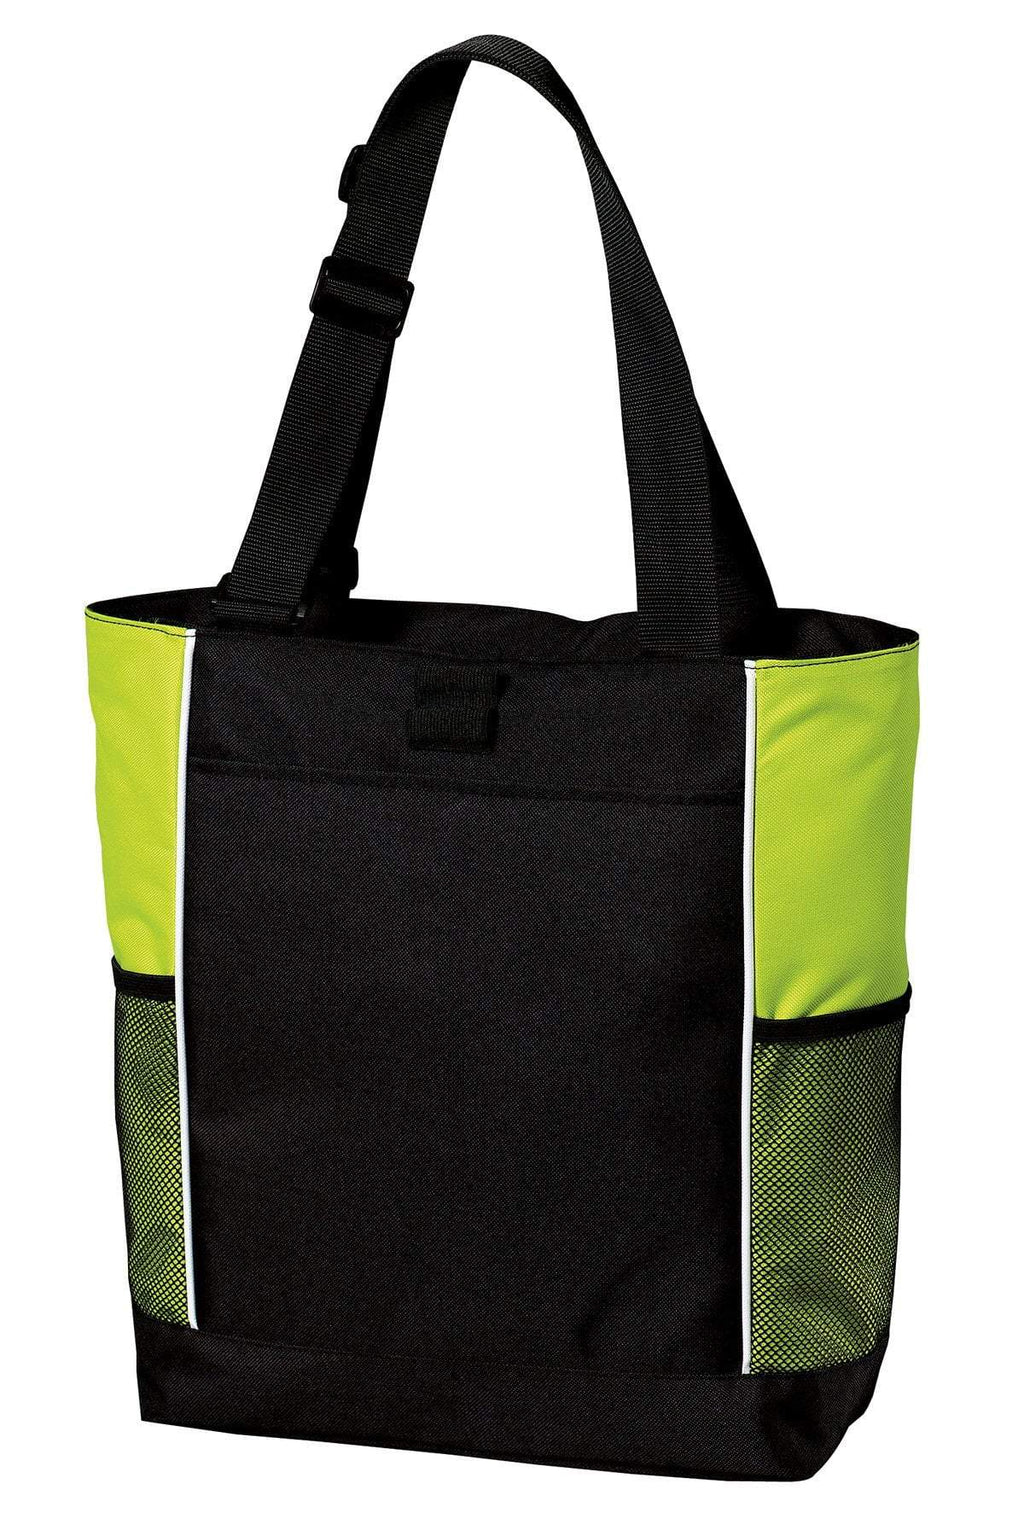 BAGANDTOTE CANVAS TOTE BAG LIME Panel Polyester Canvas Tote Bag